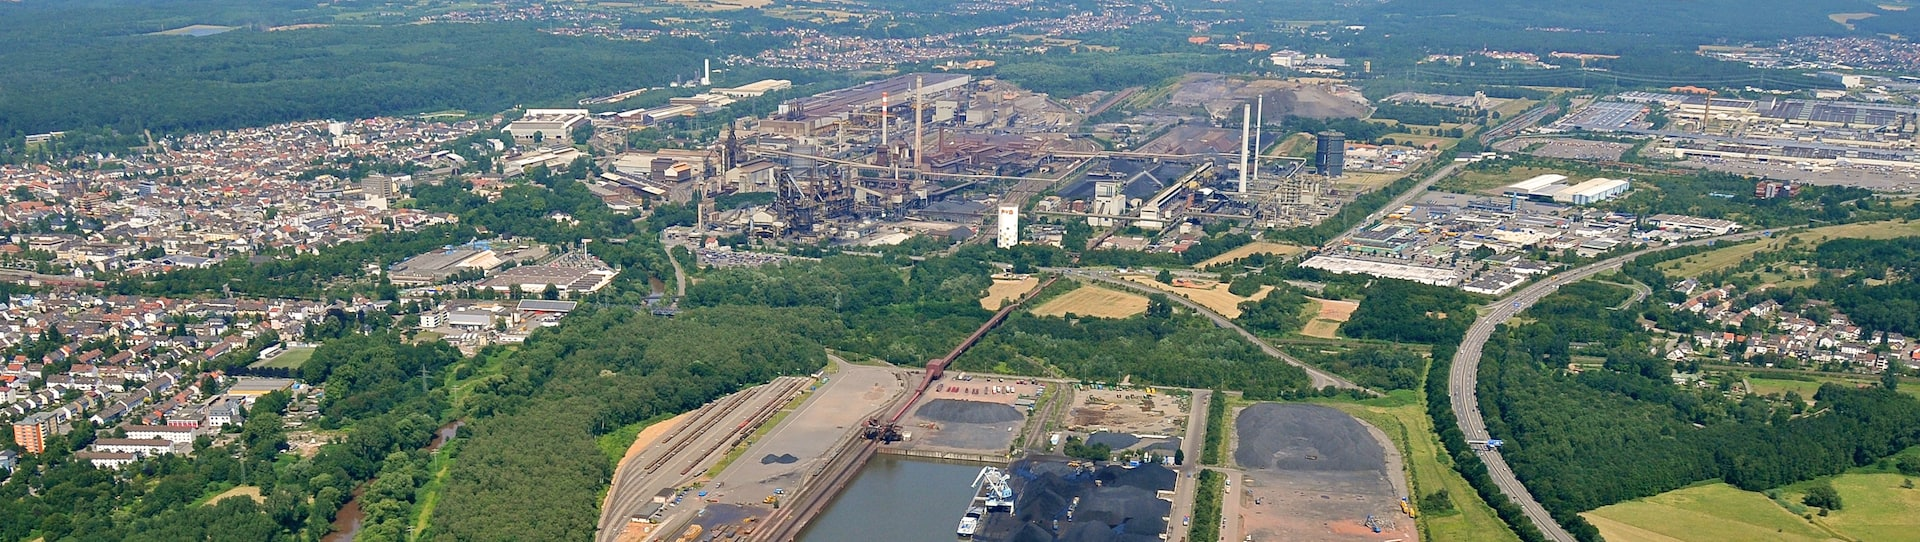 Industrie in Dillingen